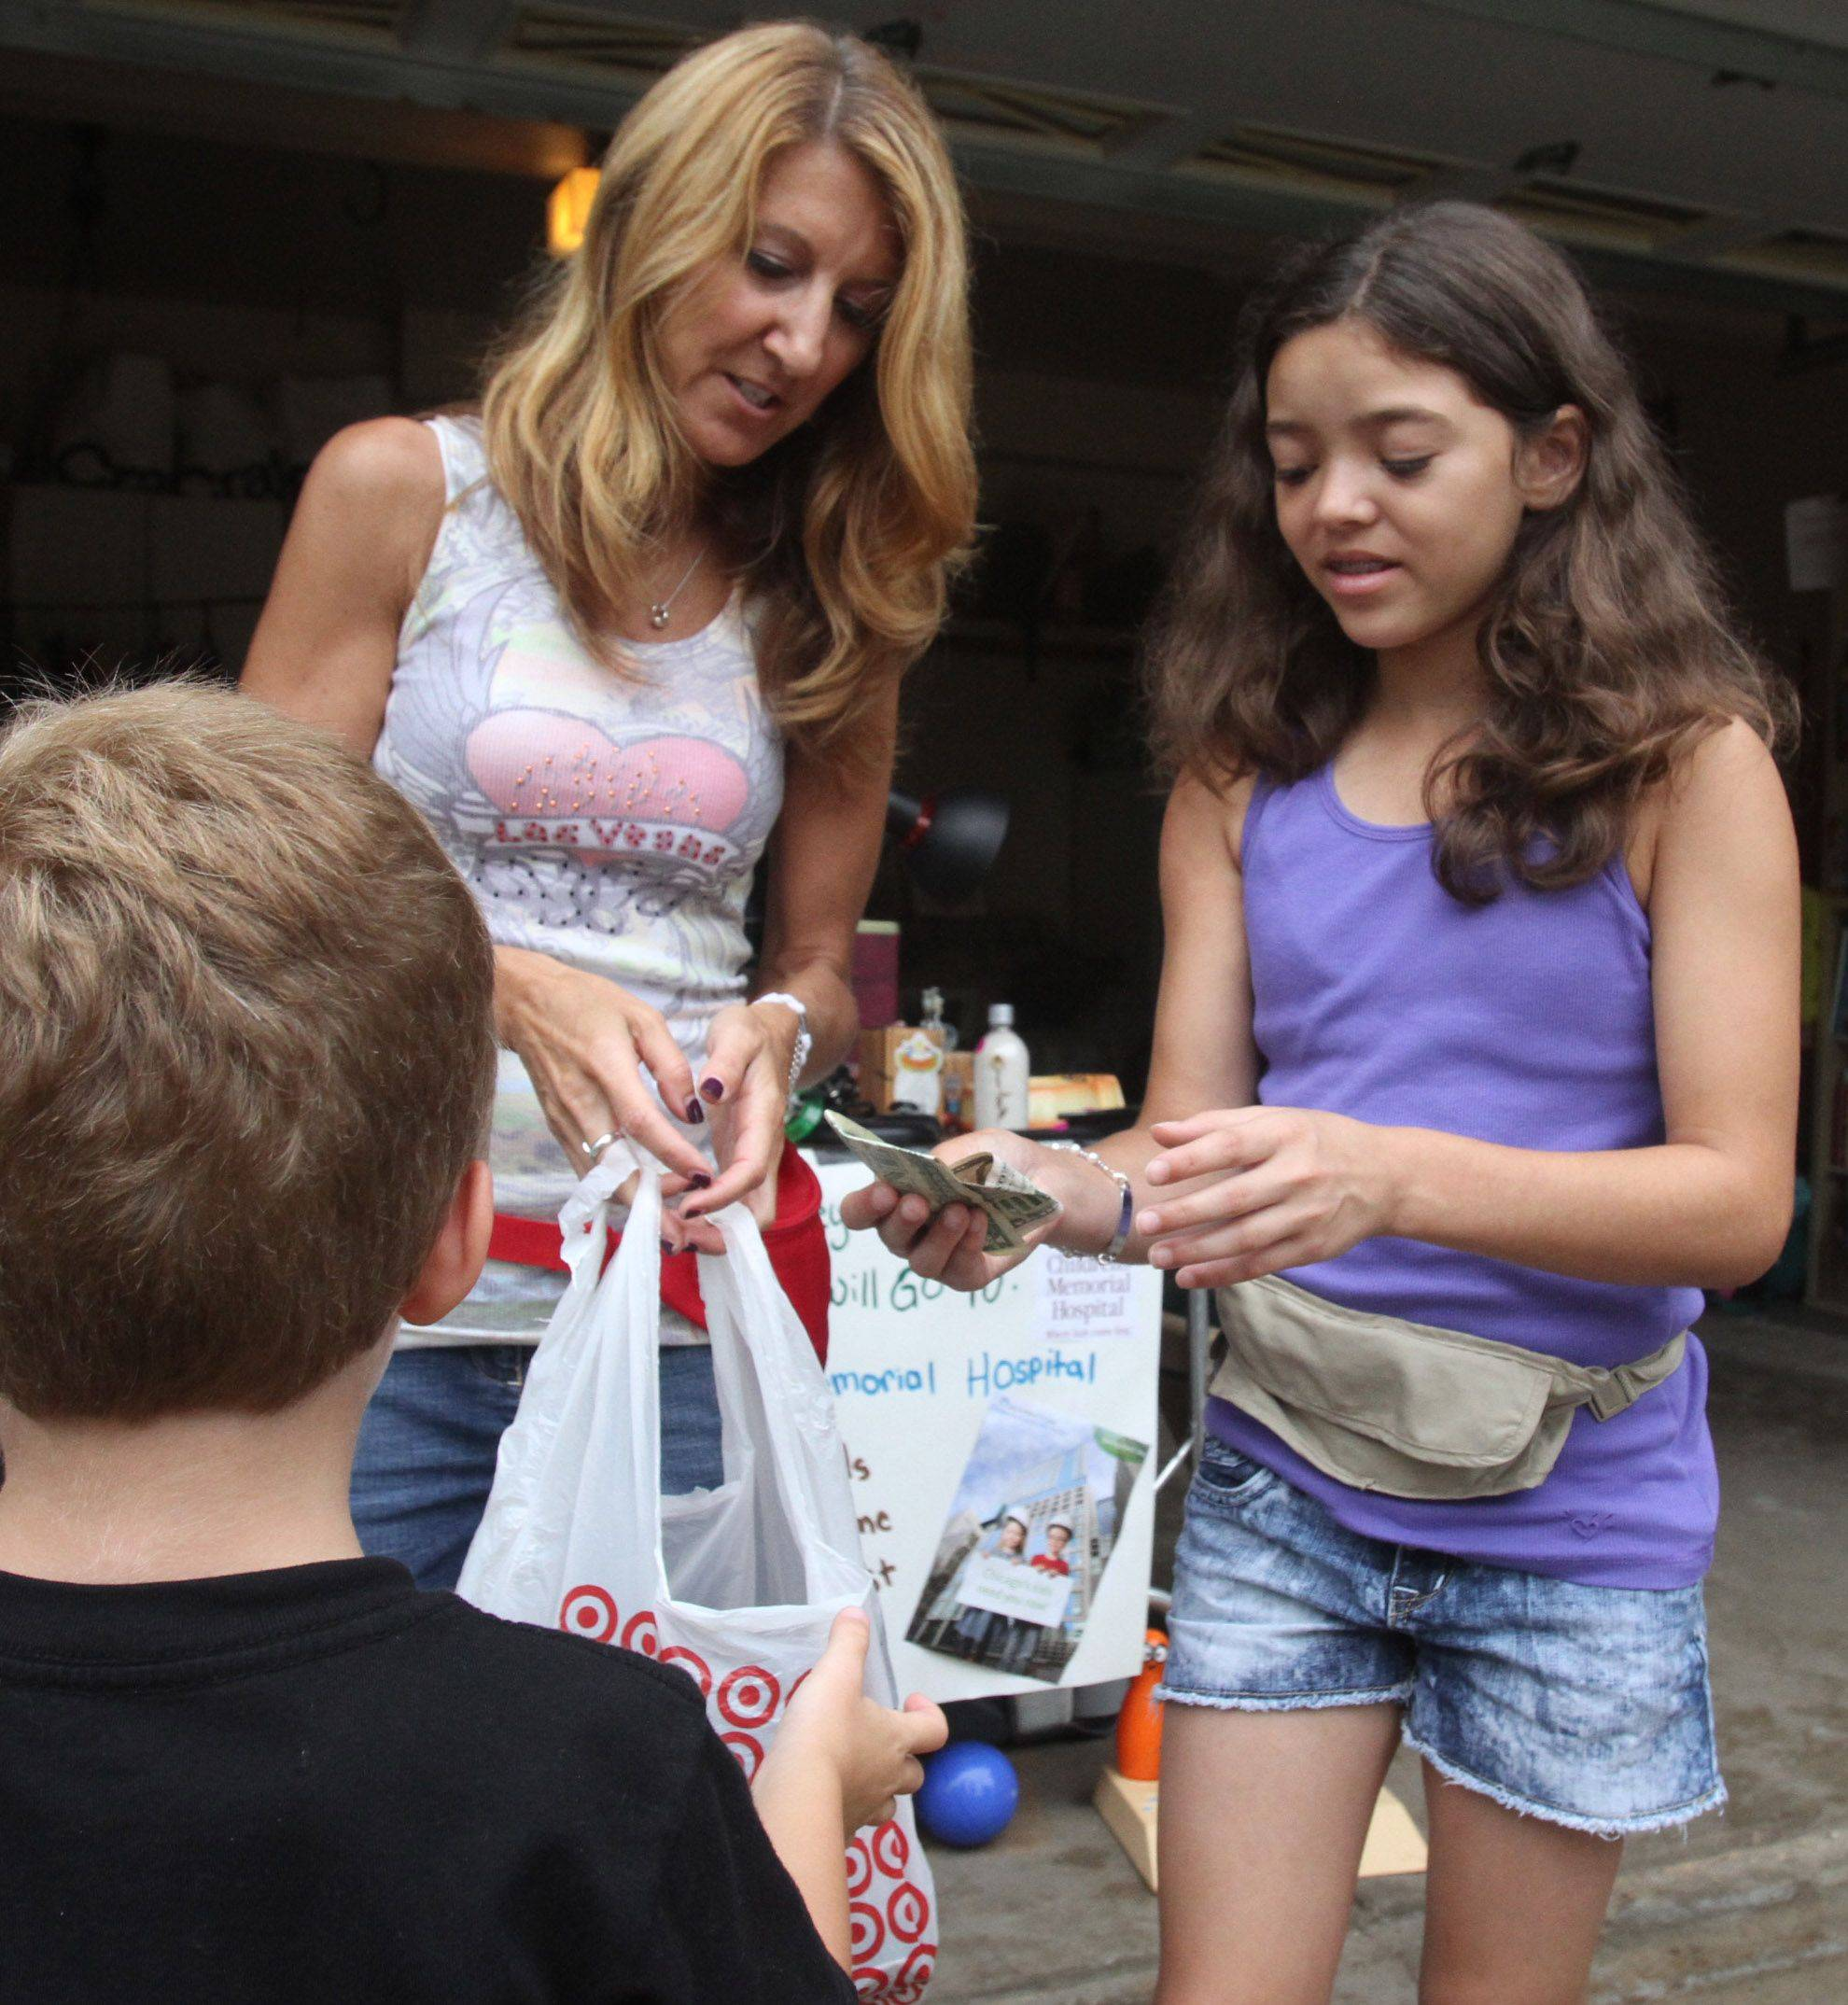 Mundelein 12-year-old Rebecca Ackerman and her mom, Michele, sells items to Christopher Elliott, 5, of Mundelein, at a garage sale Saturday the girl organized to raise money for Children's Memorial Hospital in Chicago.